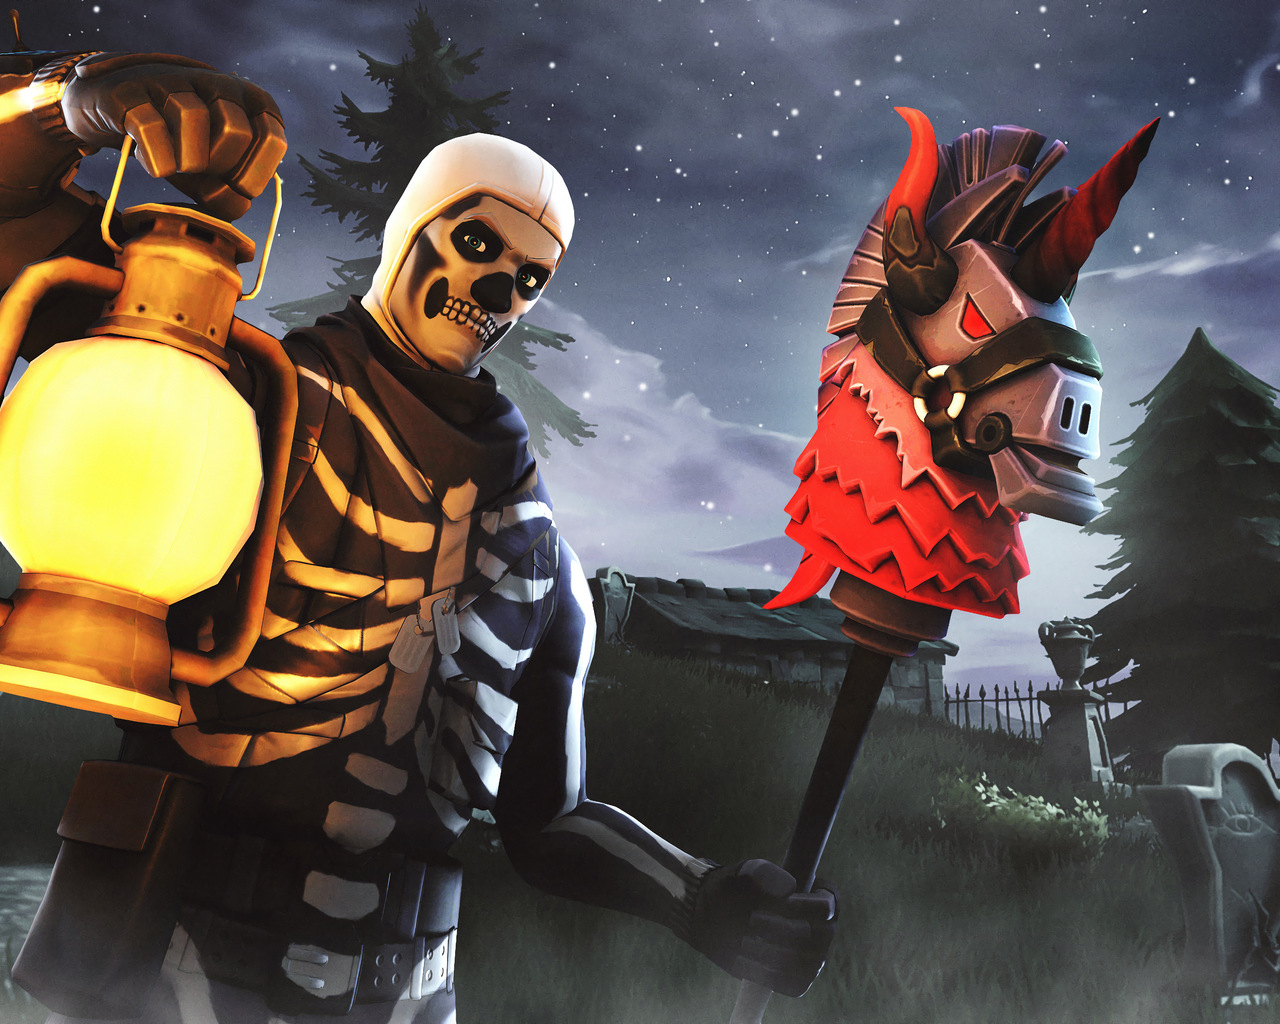 1280x1024 Skull Trooper Fortnite Season 6 4k 1280x1024 Resolution Hd